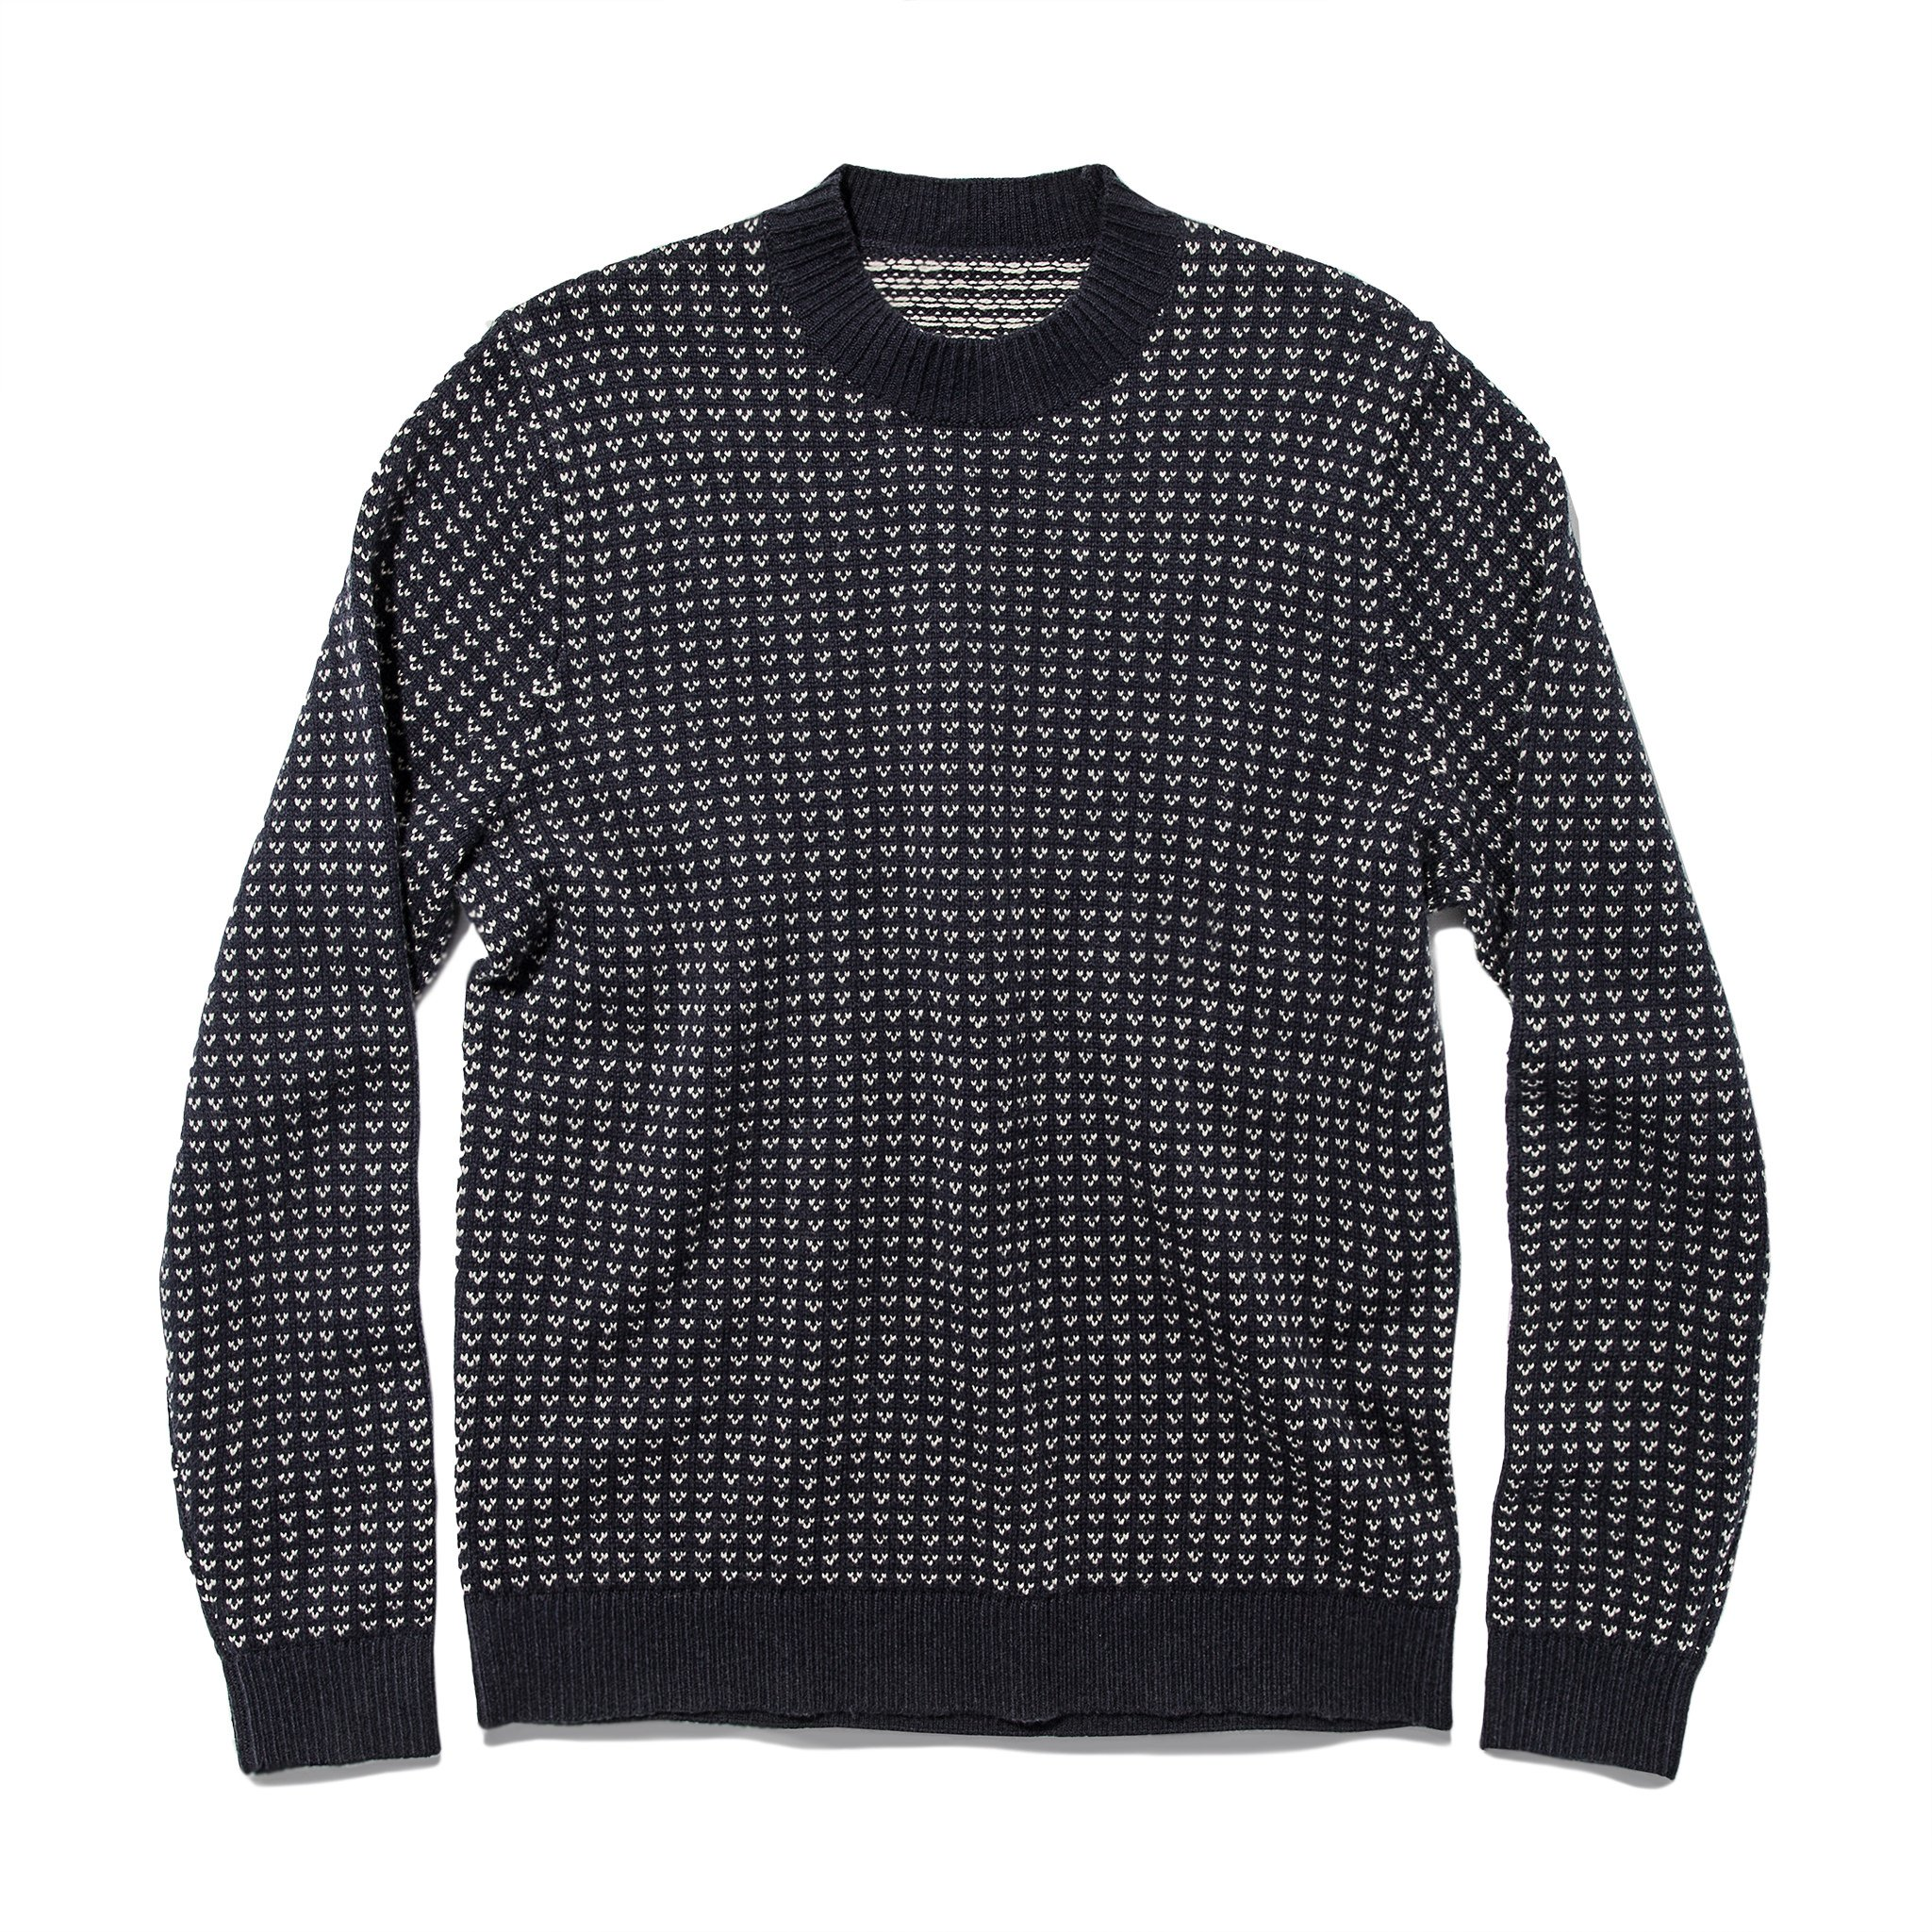 Taylor Stitch Rangeley Sweater in Navy Cash Merino